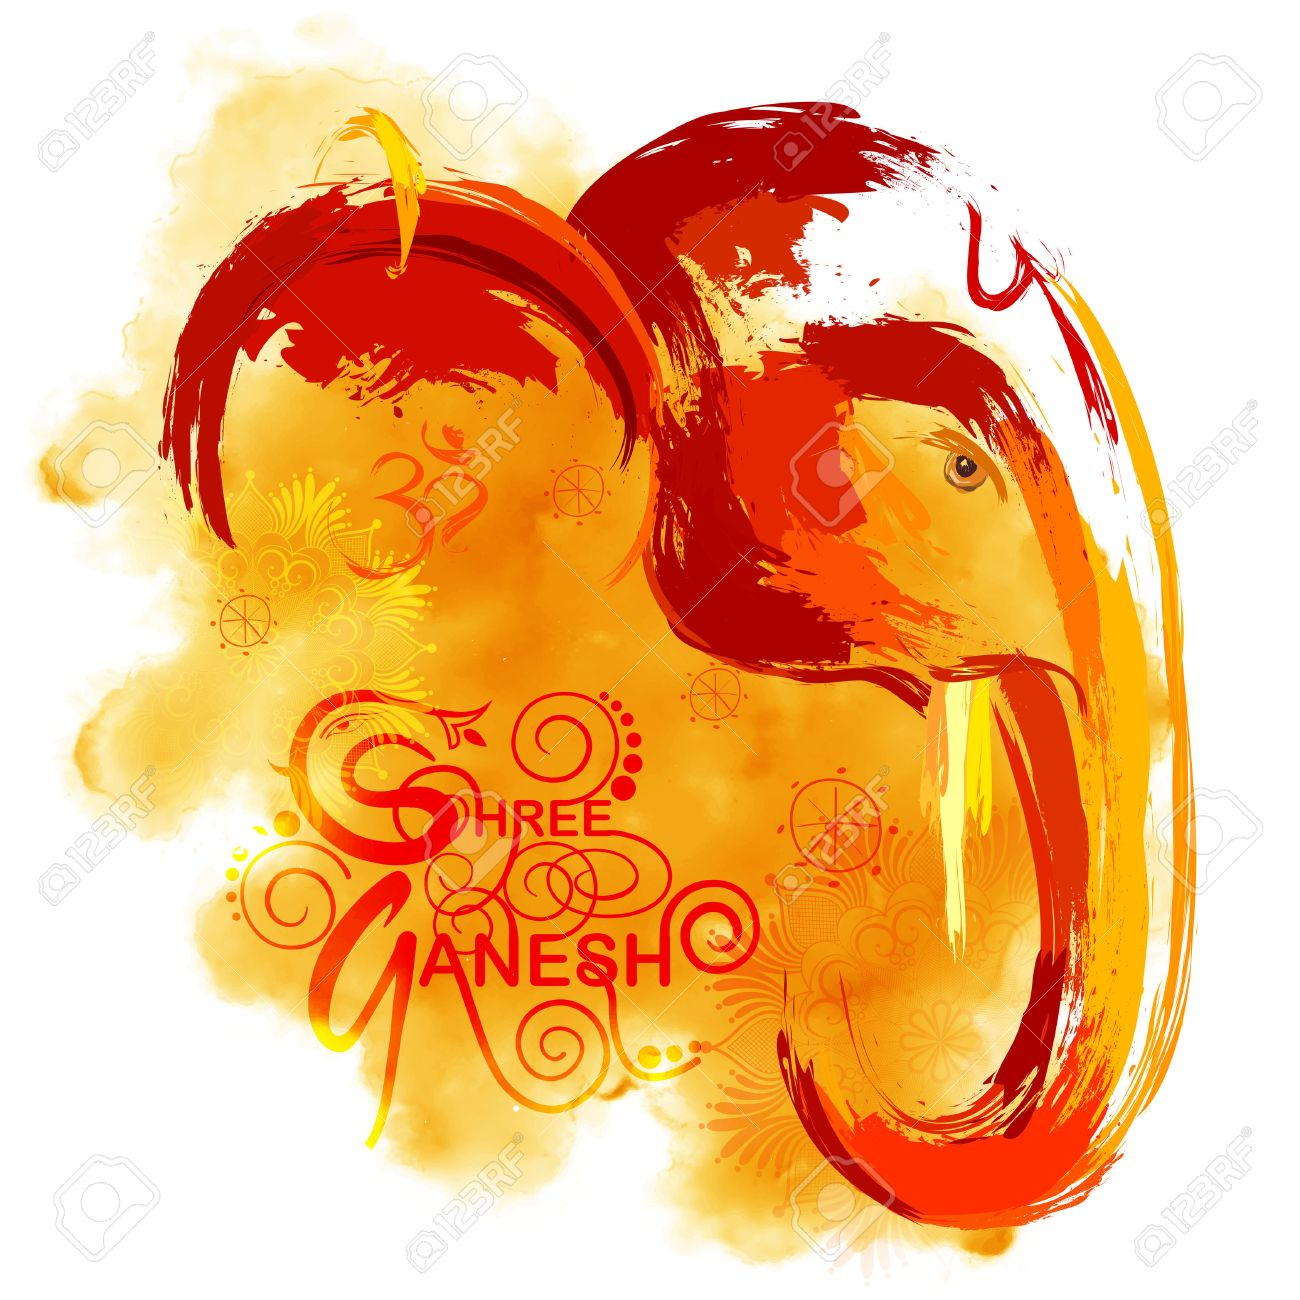 Ganesh images stock pictures royalty free ganesh photos and illustration of lord ganapati background for ganesh chaturthi in paint style illustration buycottarizona